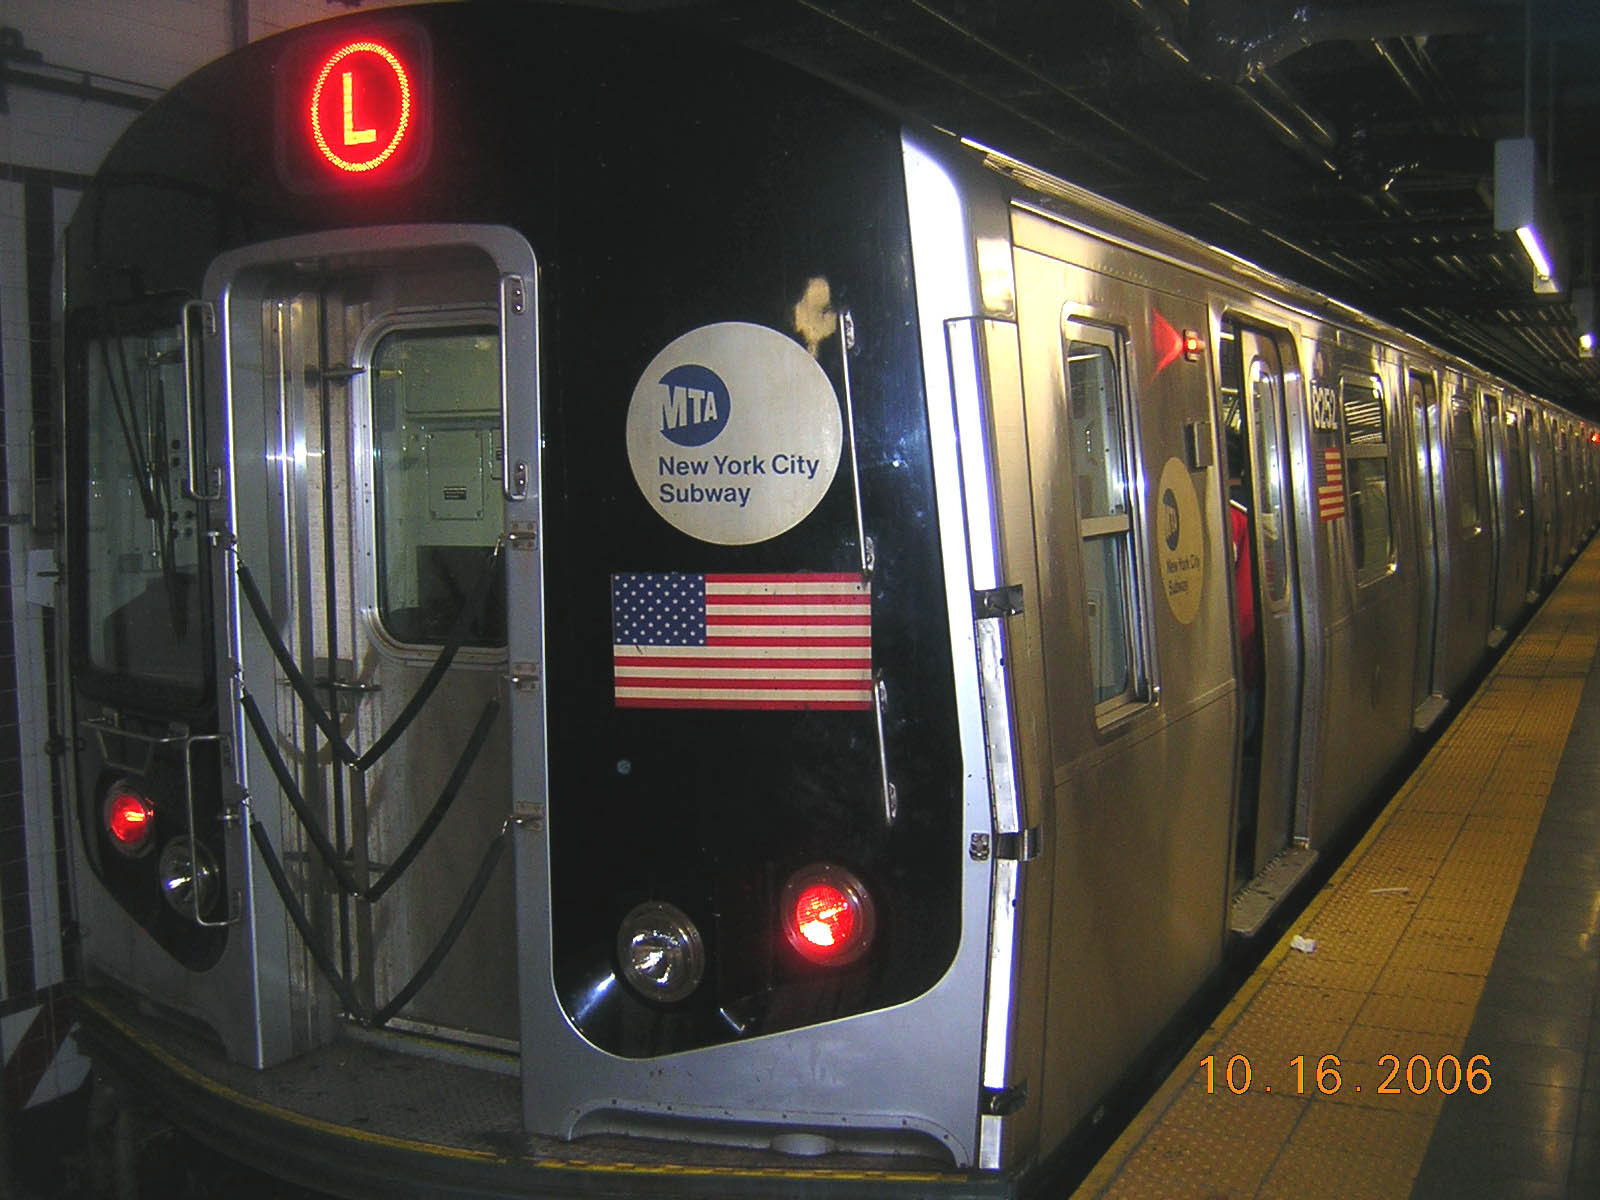 (223k, 1600x1200)<br><b>Country:</b> United States<br><b>City:</b> New York<br><b>System:</b> New York City Transit<br><b>Line:</b> BMT Canarsie Line<br><b>Location:</b> 8th Avenue <br><b>Route:</b> L<br><b>Car:</b> R-143 (Kawasaki, 2001-2002) 8252 <br><b>Photo by:</b> Robert Mencher<br><b>Date:</b> 10/16/2006<br><b>Viewed (this week/total):</b> 1 / 1550